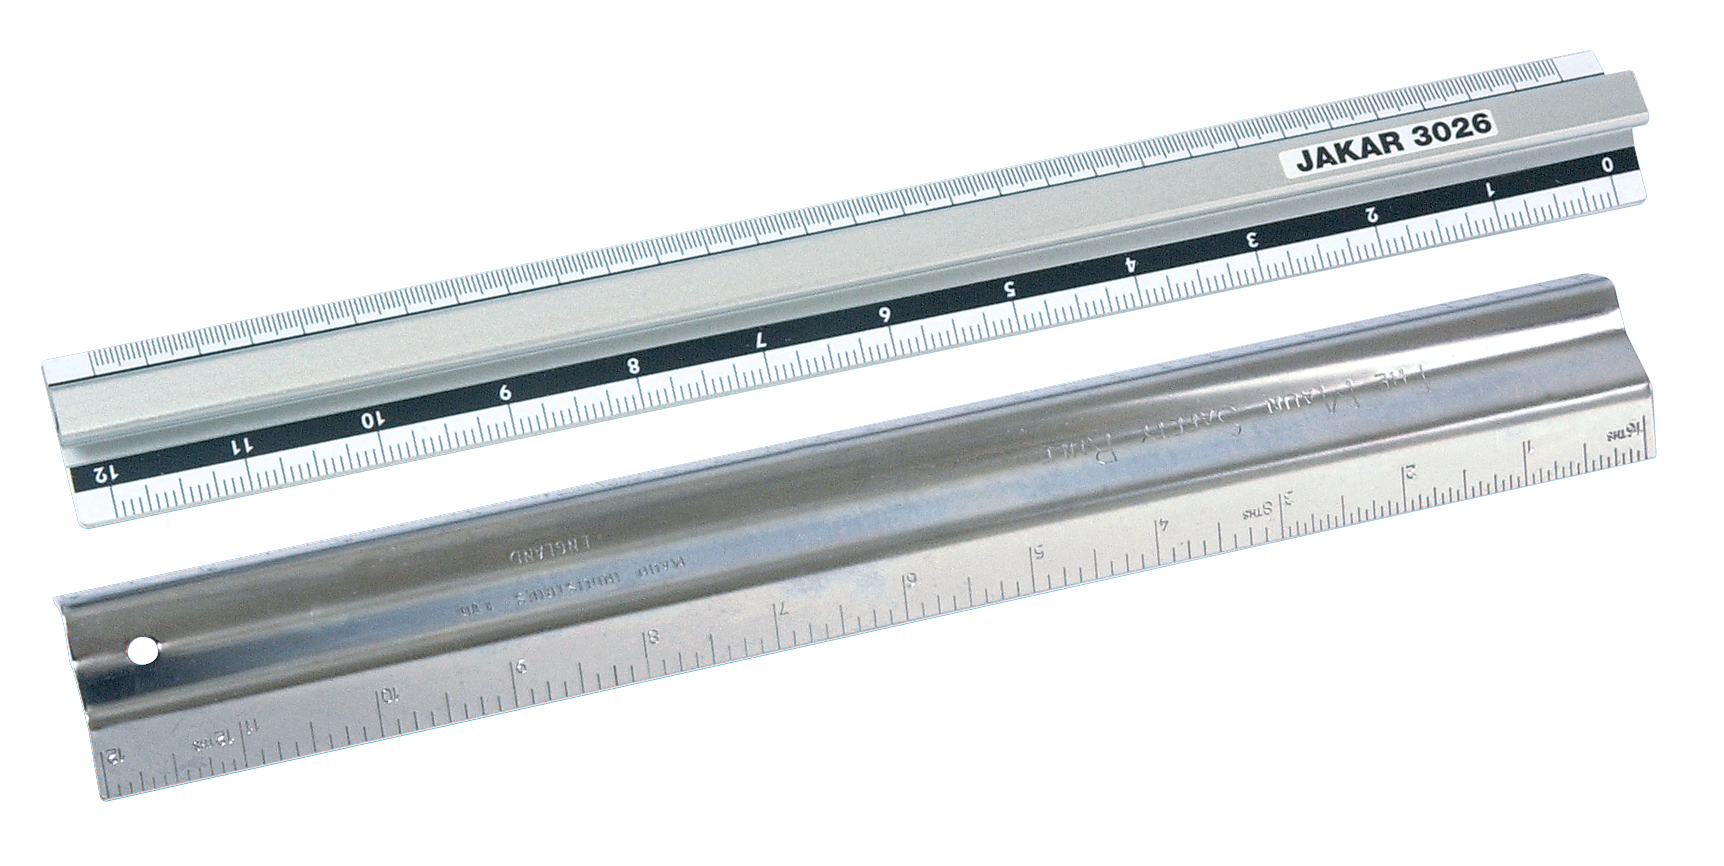 Actual Size Ruler | An Online Ruler in Actual Size